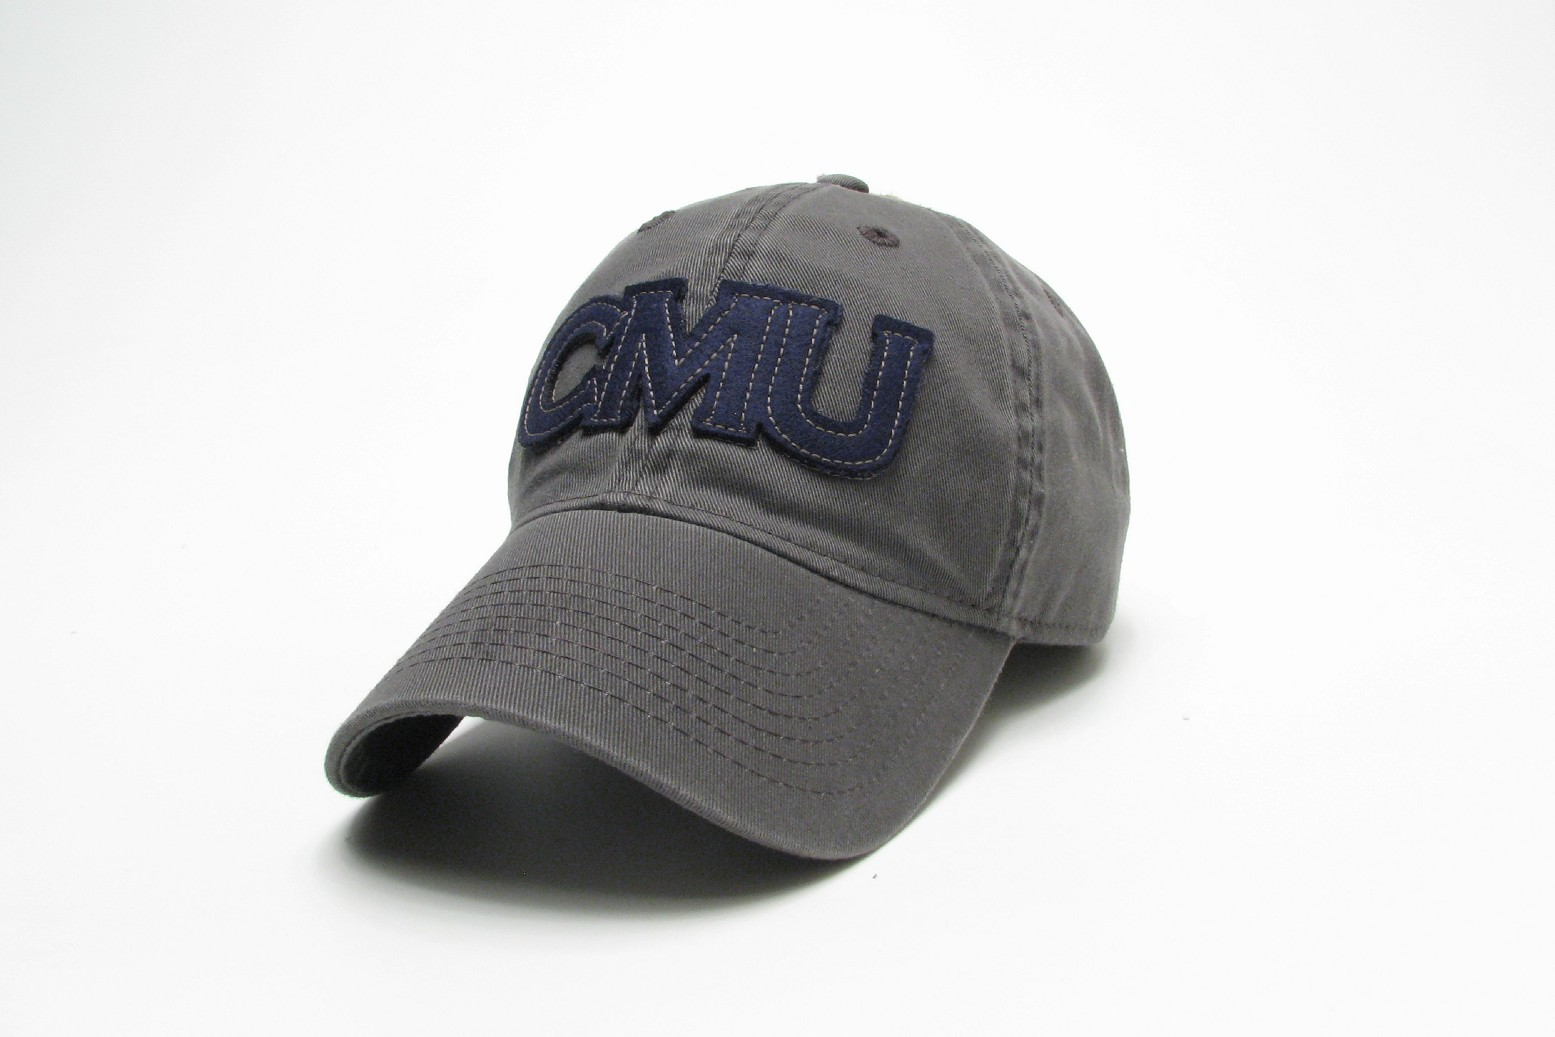 Hat: Relaxed Twill Navy